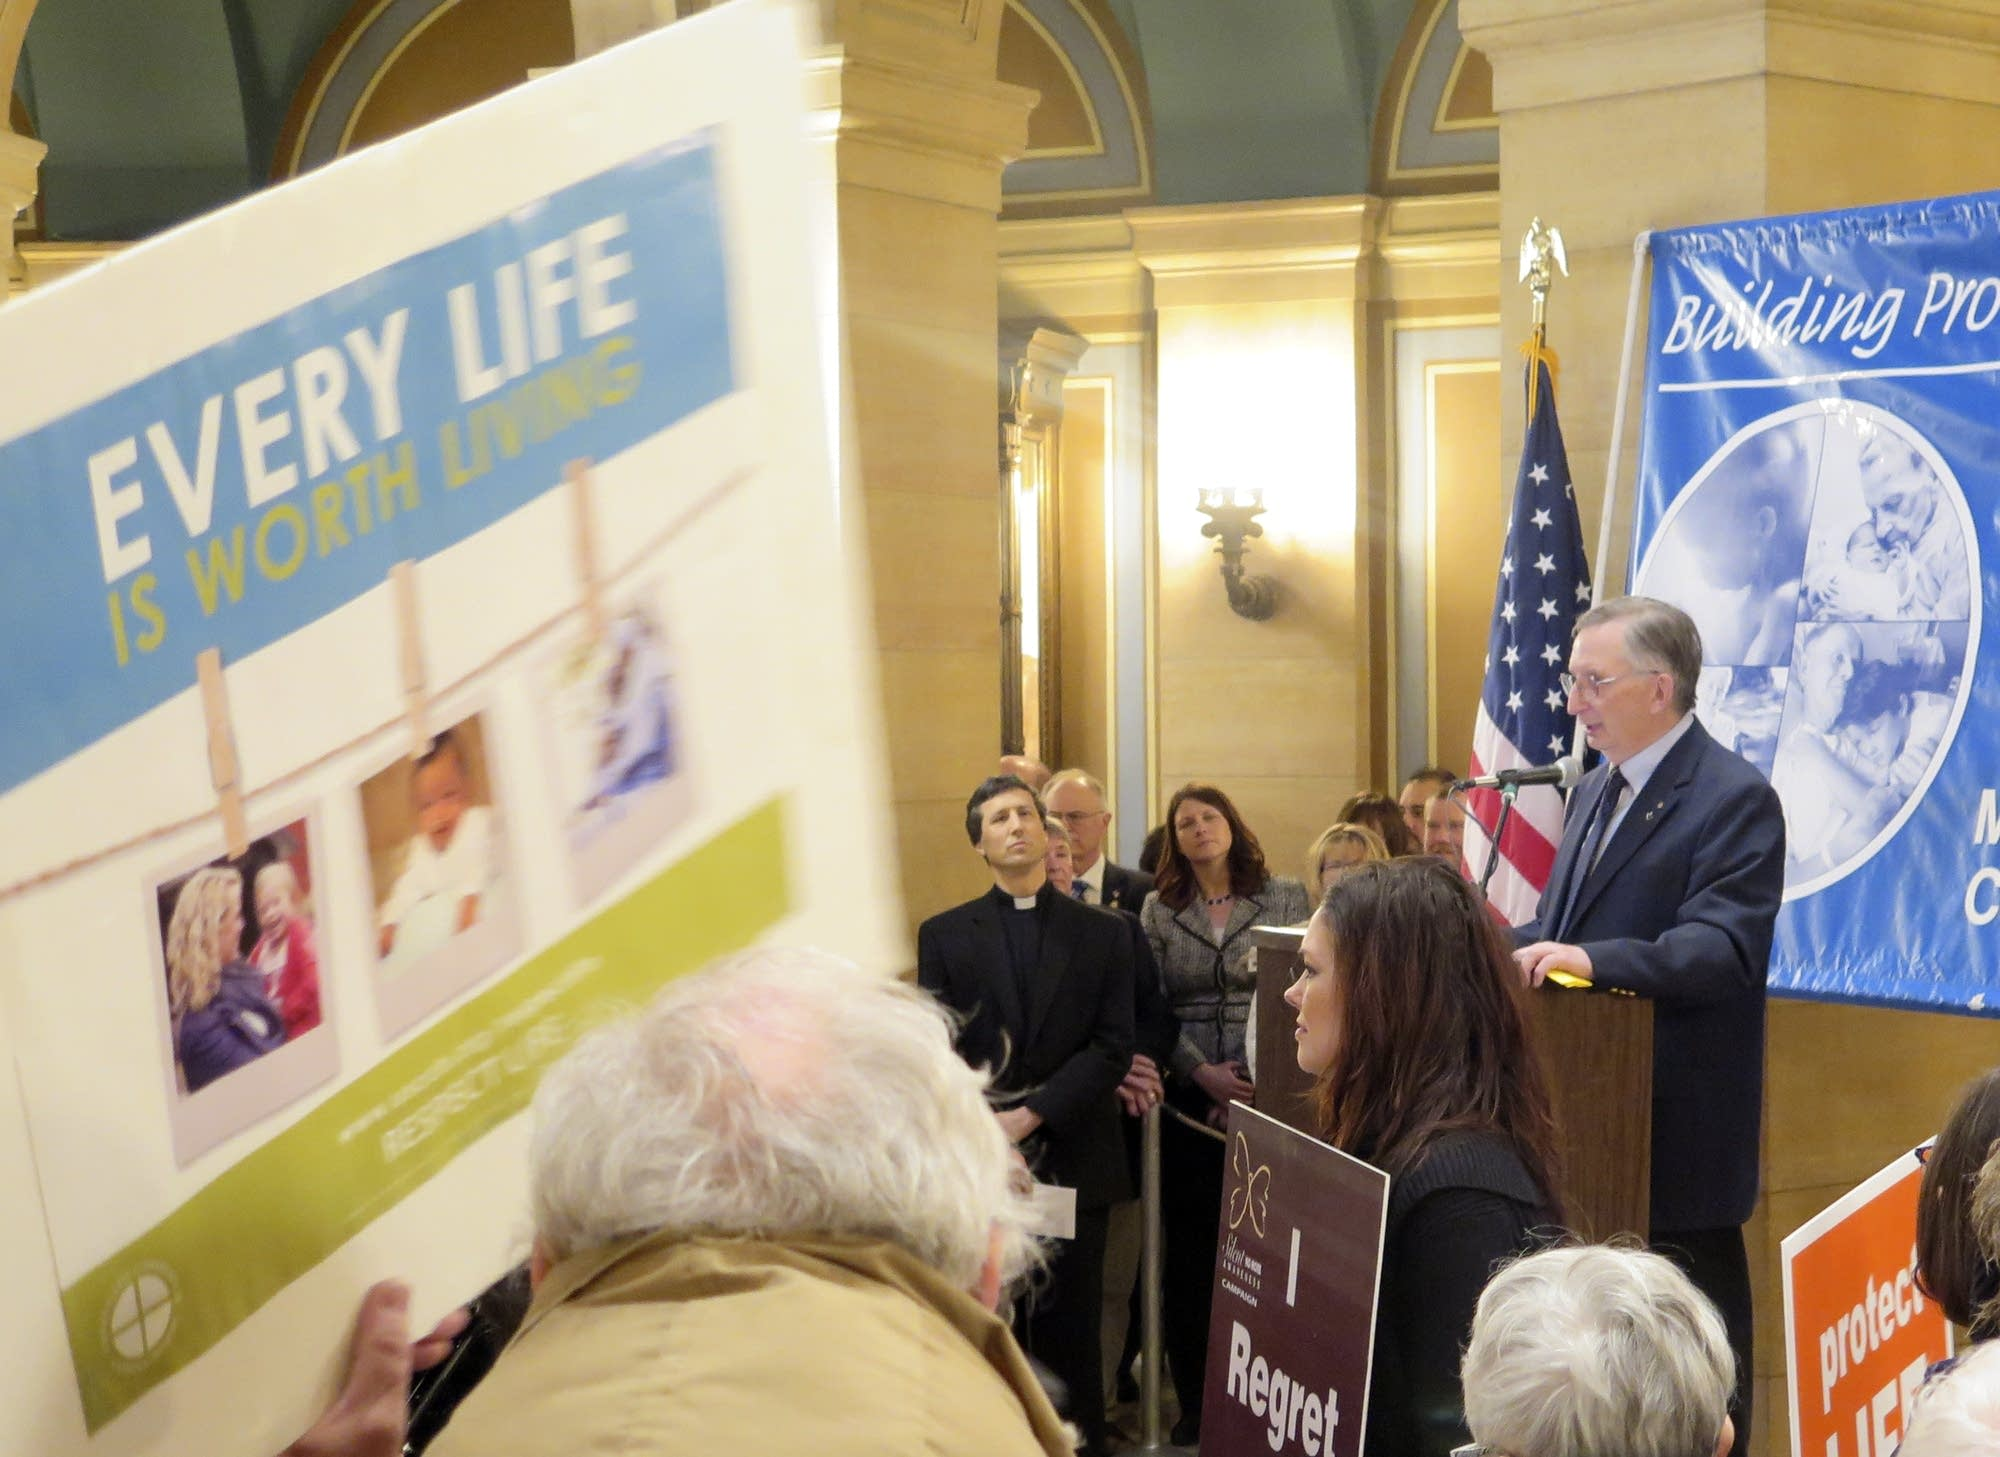 Rally against abortion draws 5000 to state Capitol